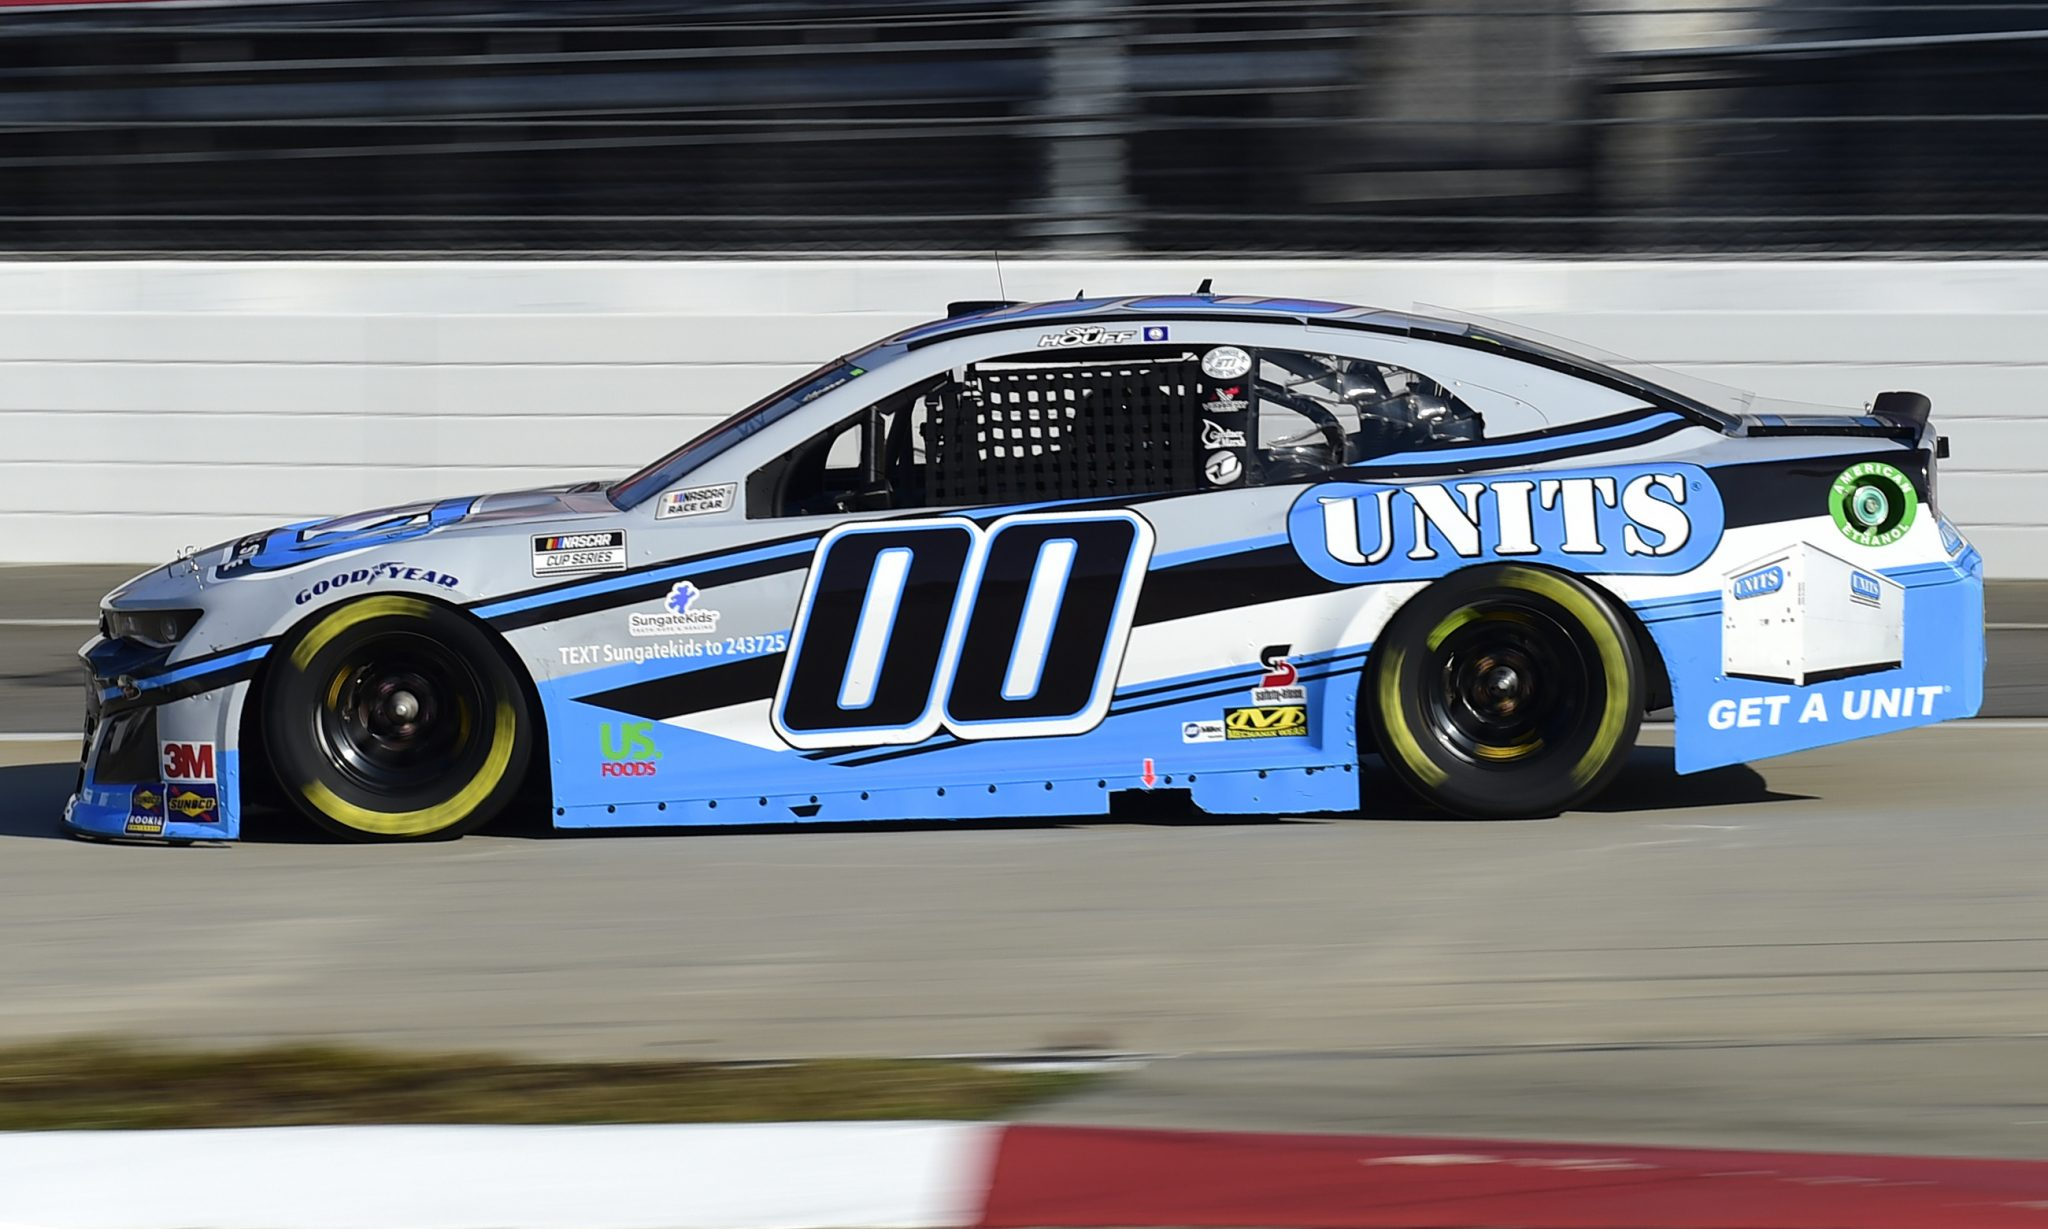 MARTINSVILLE, VIRGINIA - NOVEMBER 01: Quin Houff, driver of the #00 UNITS Chevrolet, drives during the NASCAR Cup Series Xfinity 500 at Martinsville Speedway on November 01, 2020 in Martinsville, Virginia. (Photo by Jared C. Tilton/Getty Images) | Getty Images